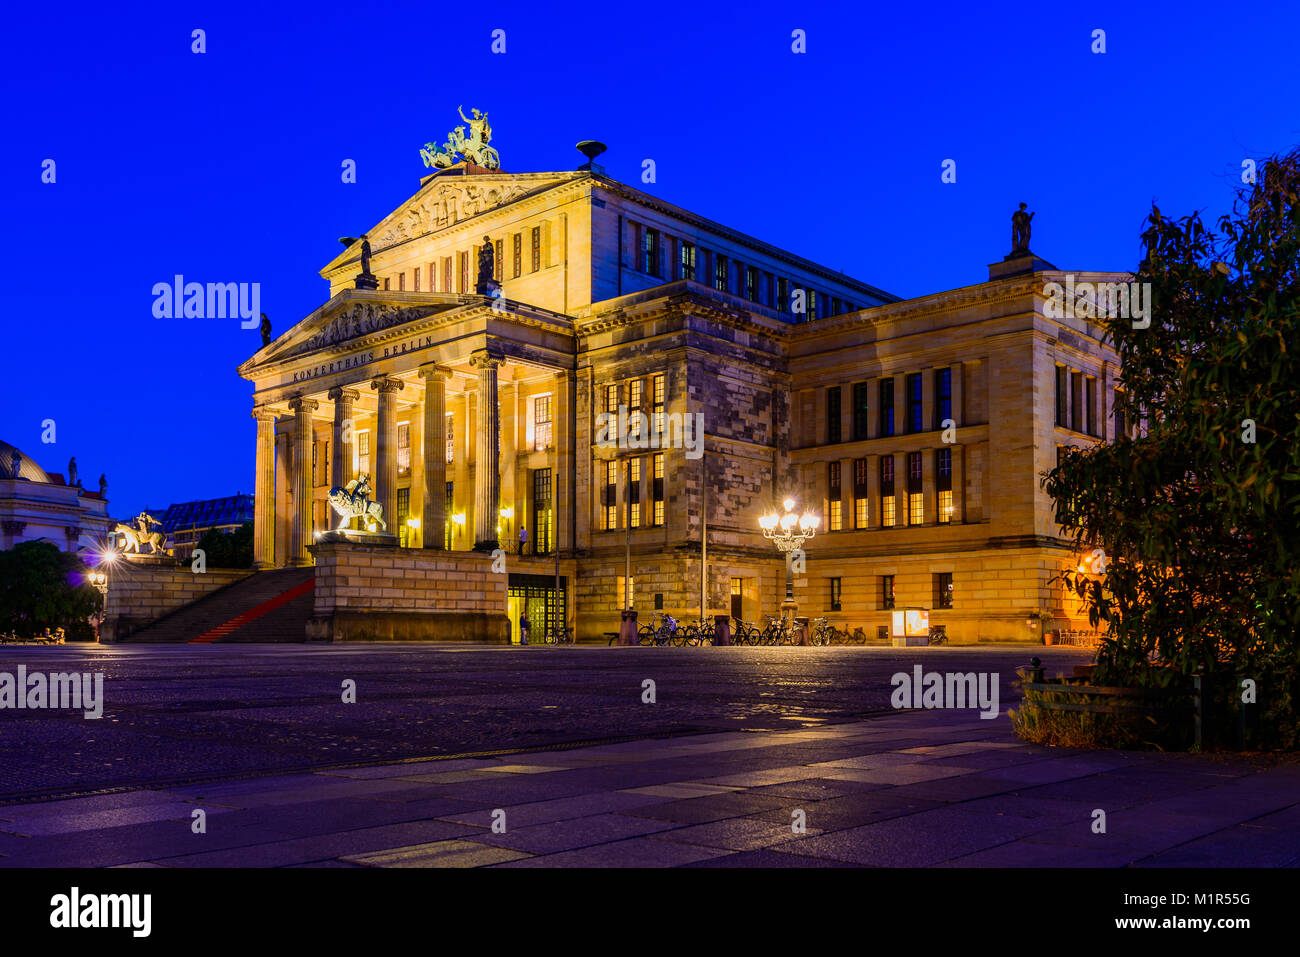 The Konzerthaus in Berlin, Germany, at night Stock Photo